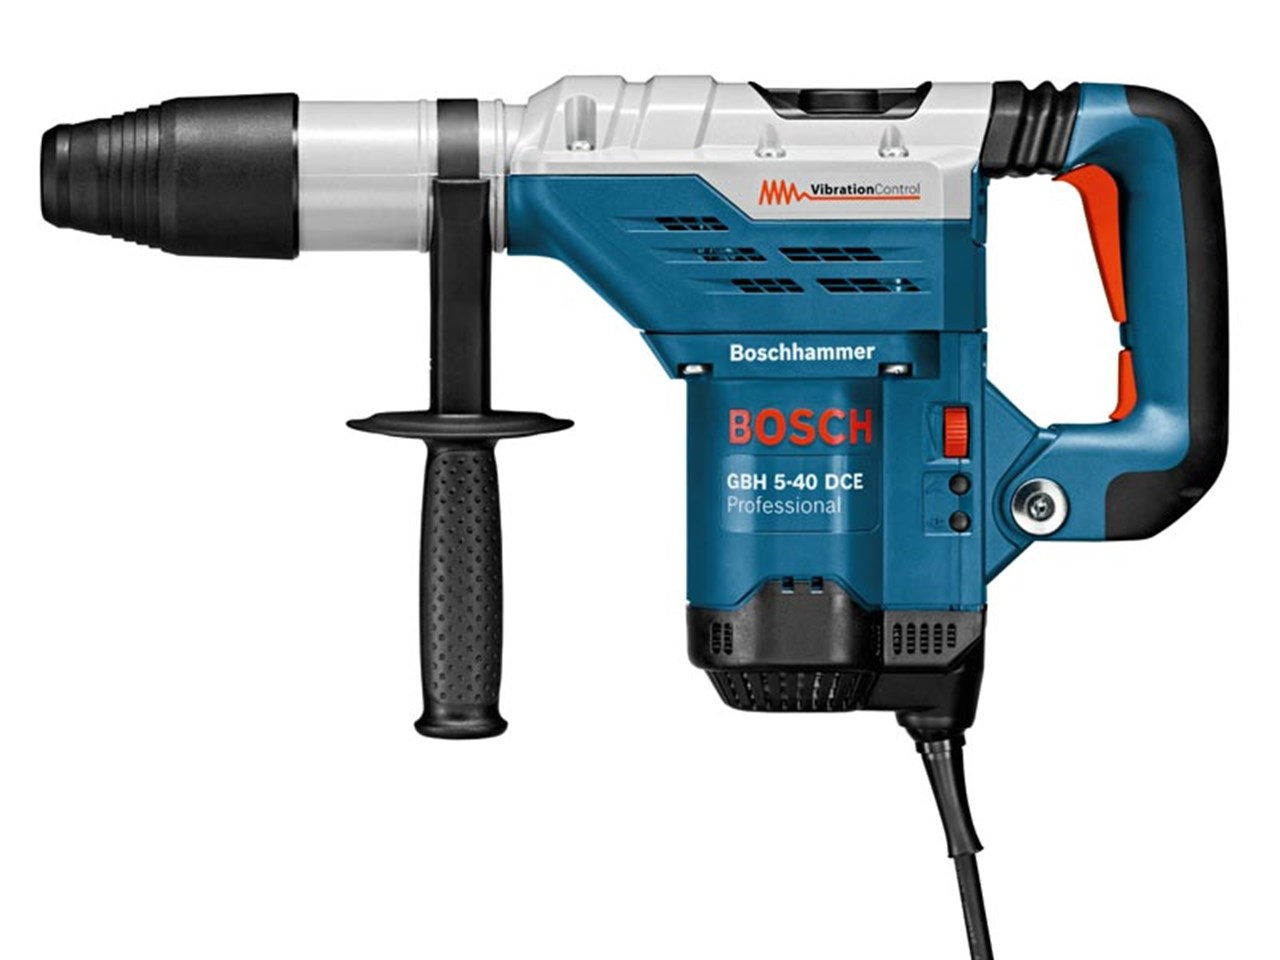 bosch gbh5 40dce sds max rotary combi hammer drill 240v. Black Bedroom Furniture Sets. Home Design Ideas